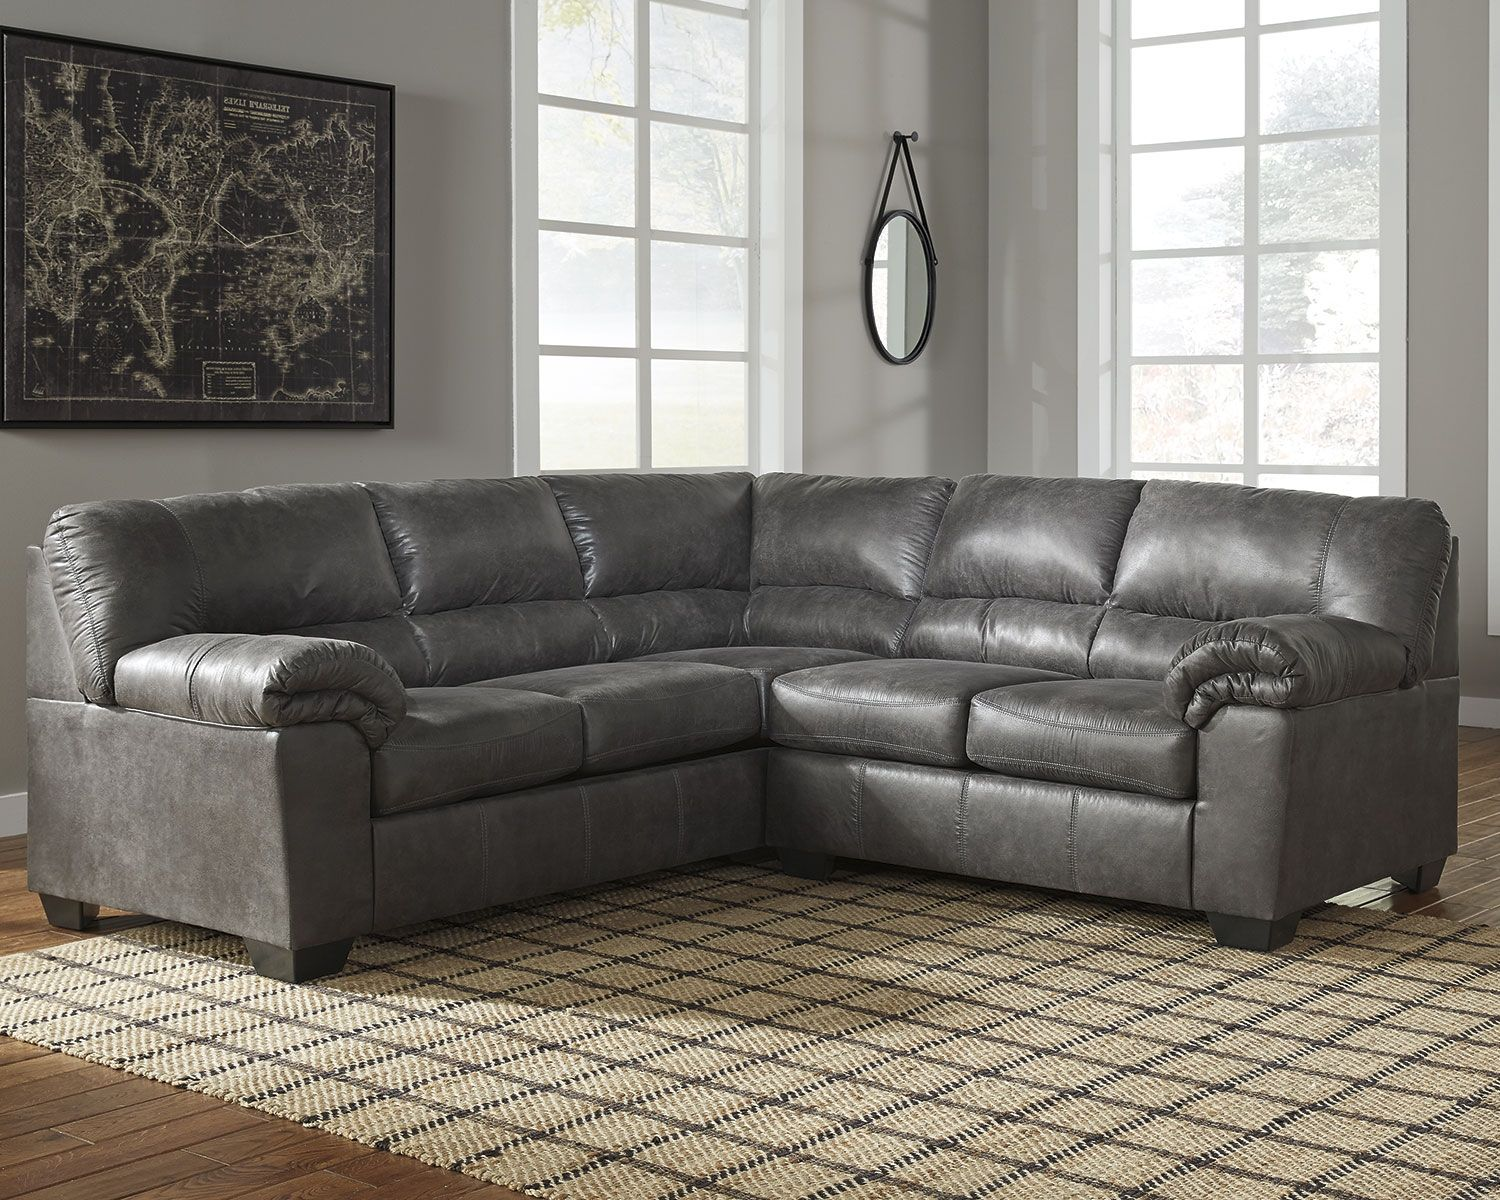 Best Bladen 2 Piece Sectional With Images Country Furniture 400 x 300